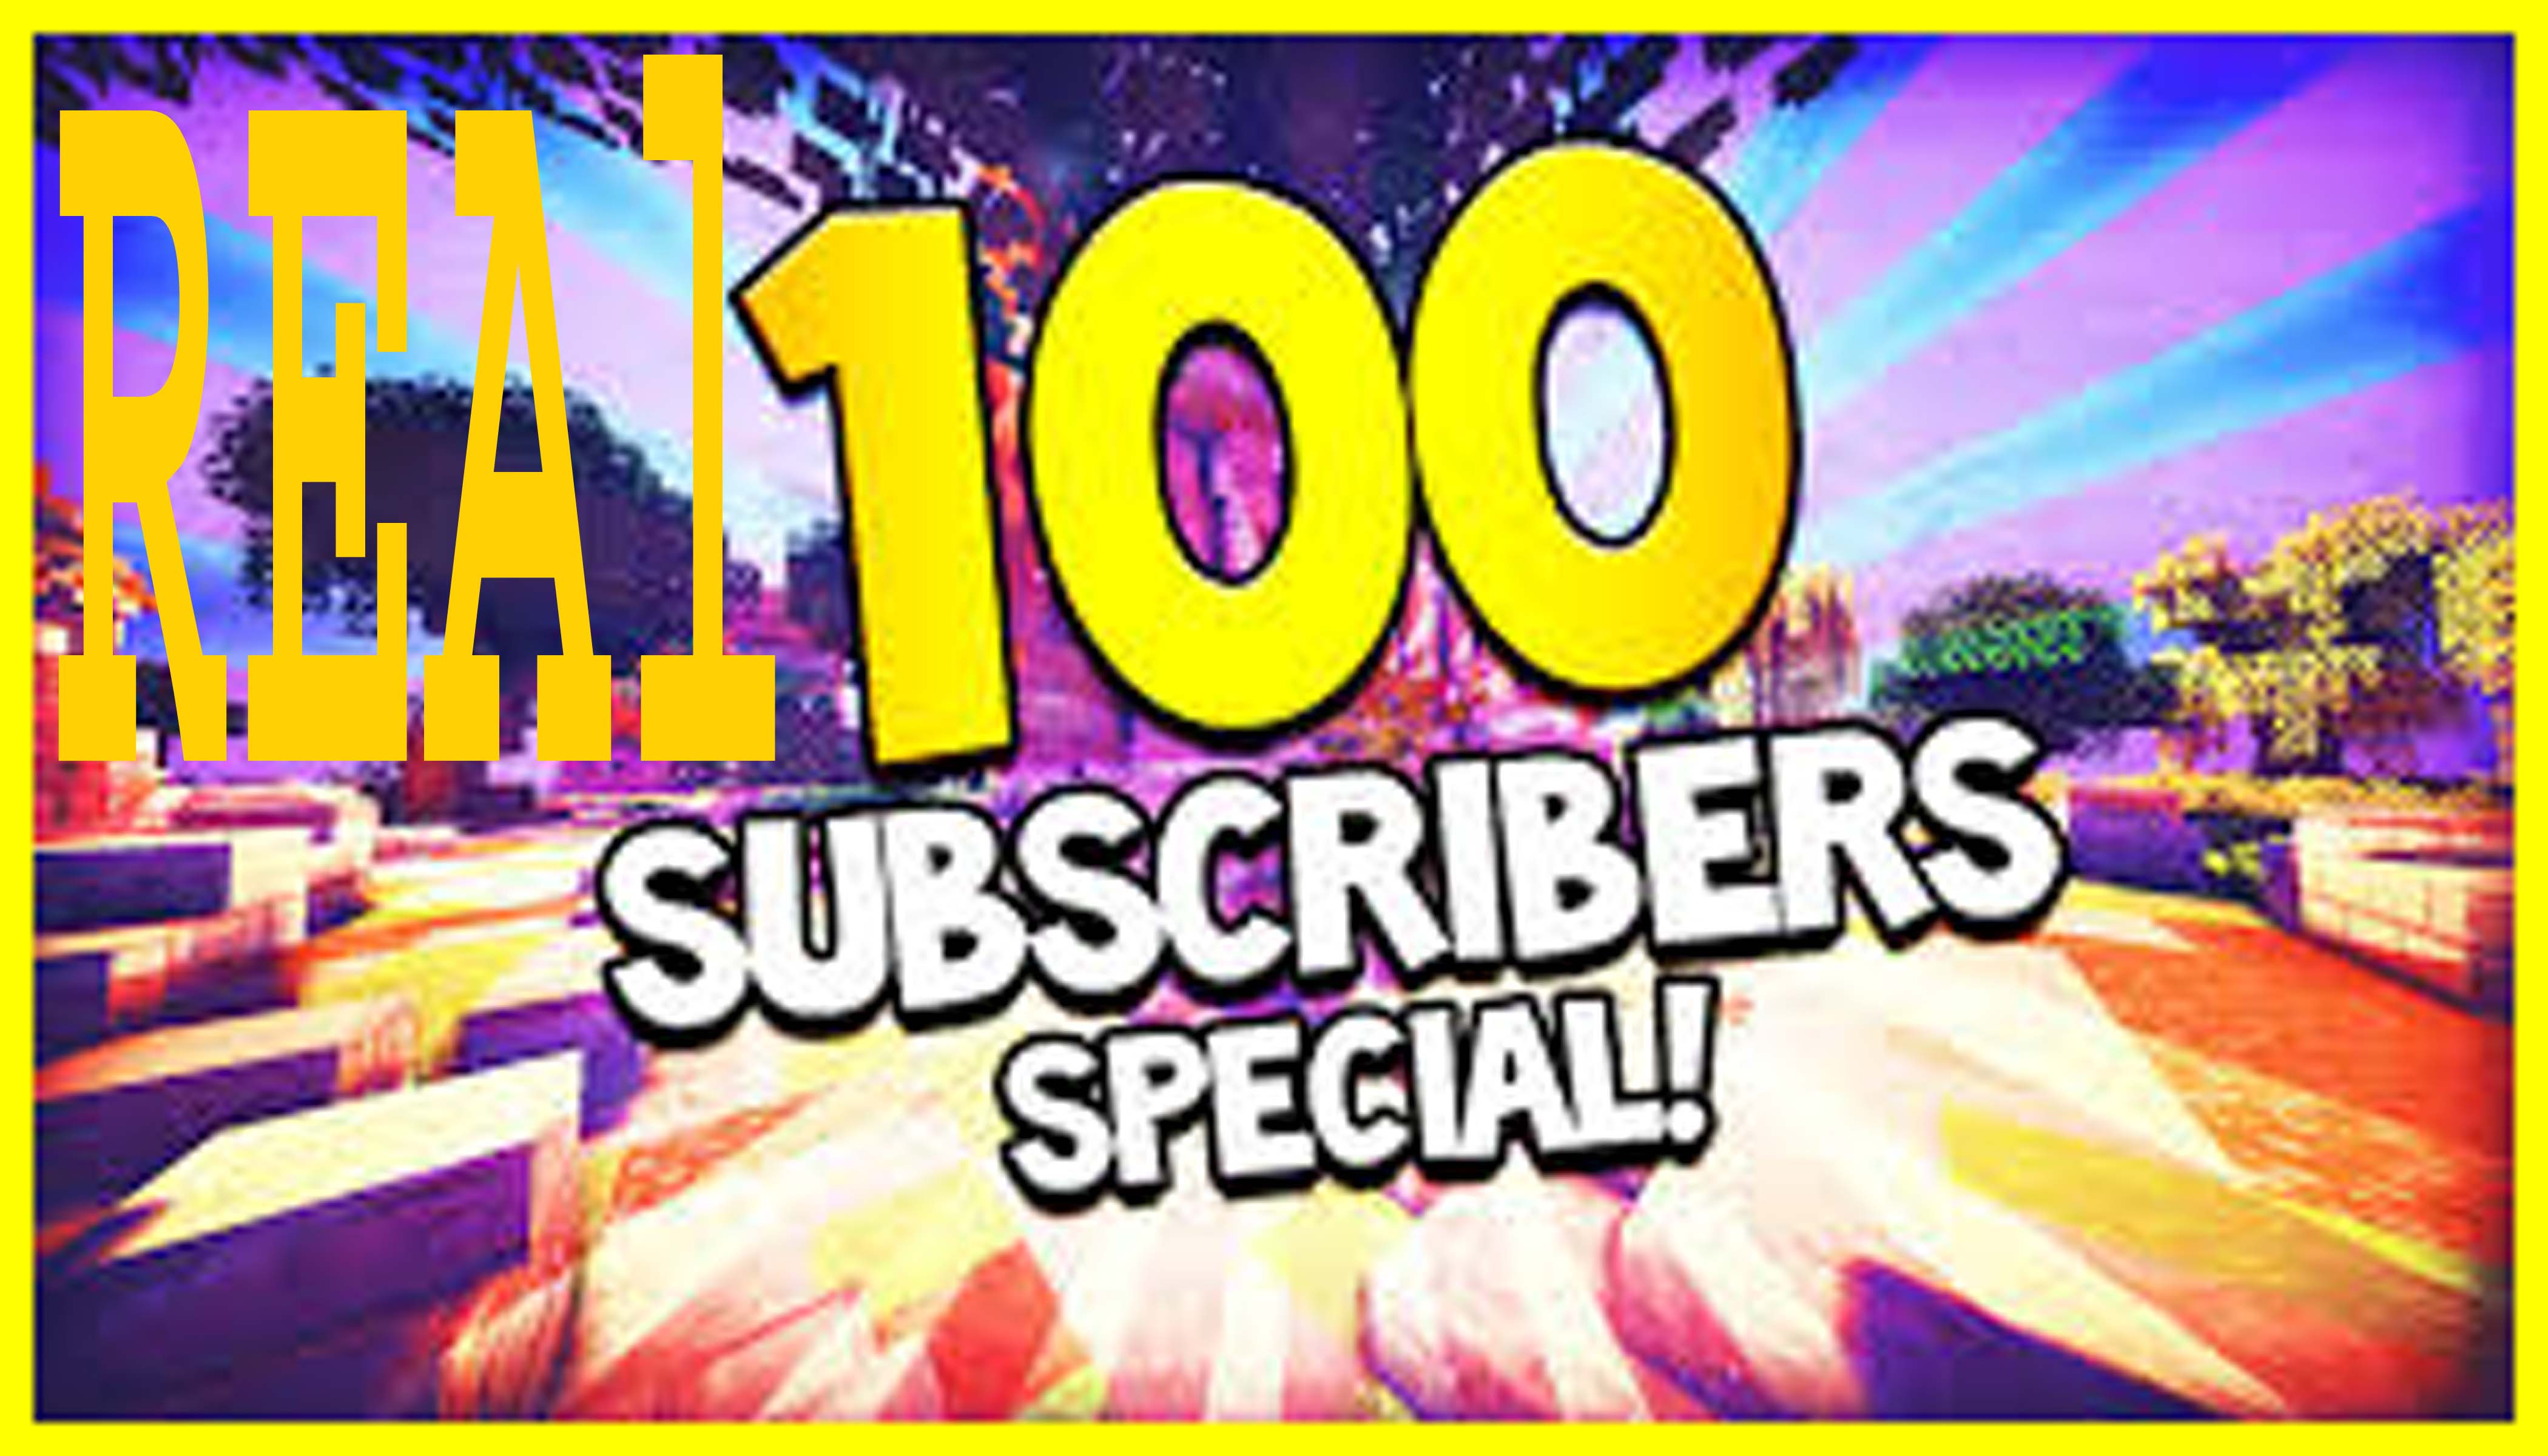 Supper Fast 100+++ YouTube Subscri bers or 100 you tube li kes OR 30 you tube custom com ments only with in complete 72 hours